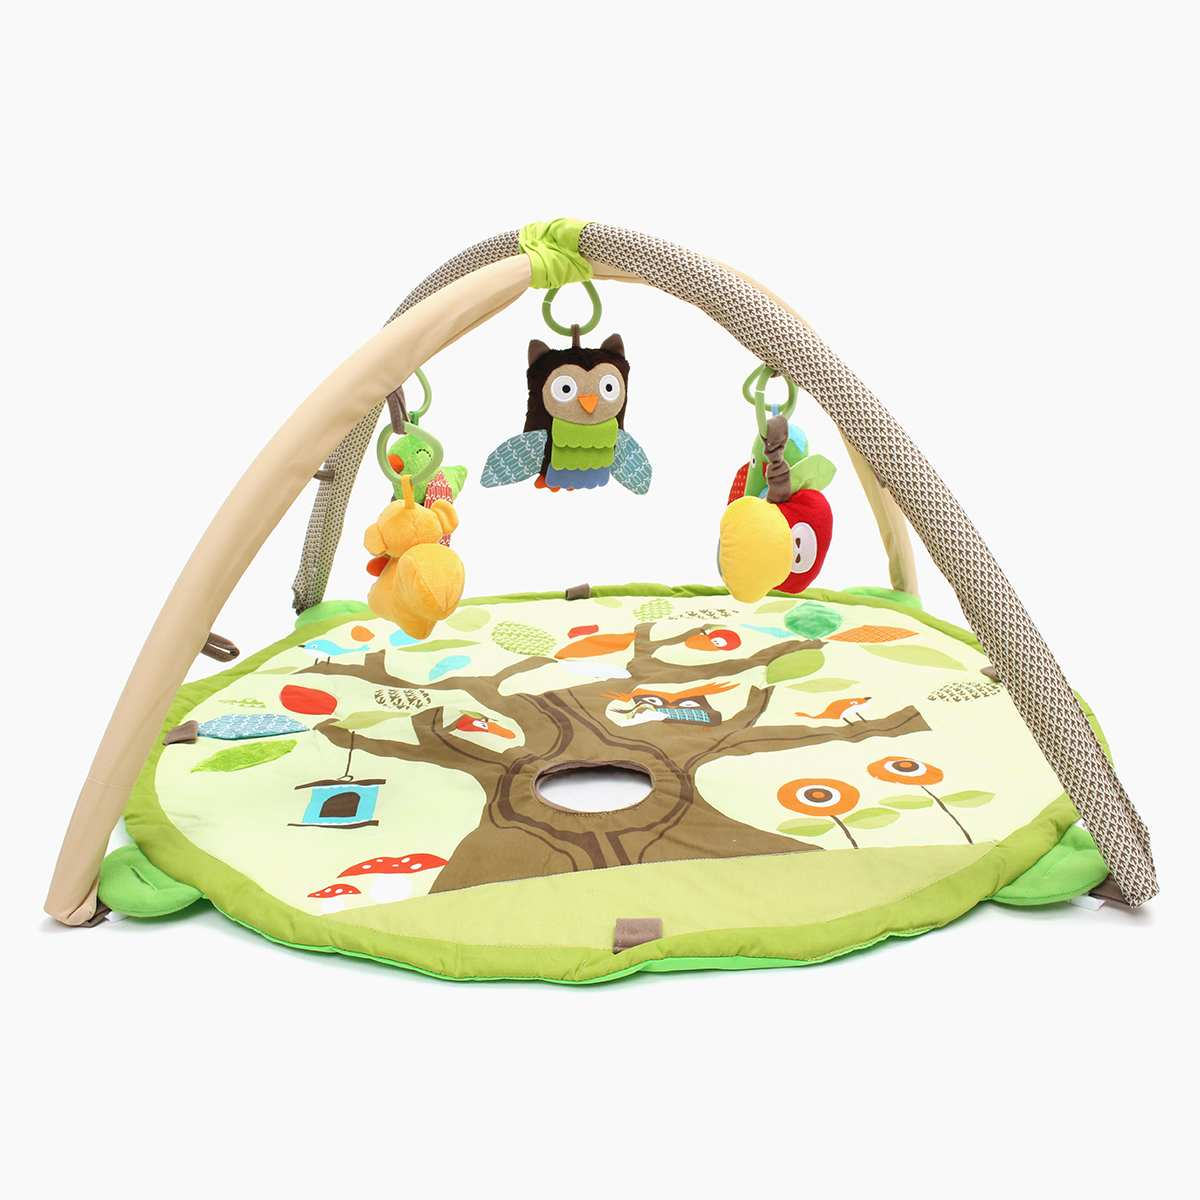 Children Activity Gym Playmat Newborn Infant Baby Crib Soft Floor Rug Kids Toy Carpet Colorful Cartoon Patterns Baby Bedding